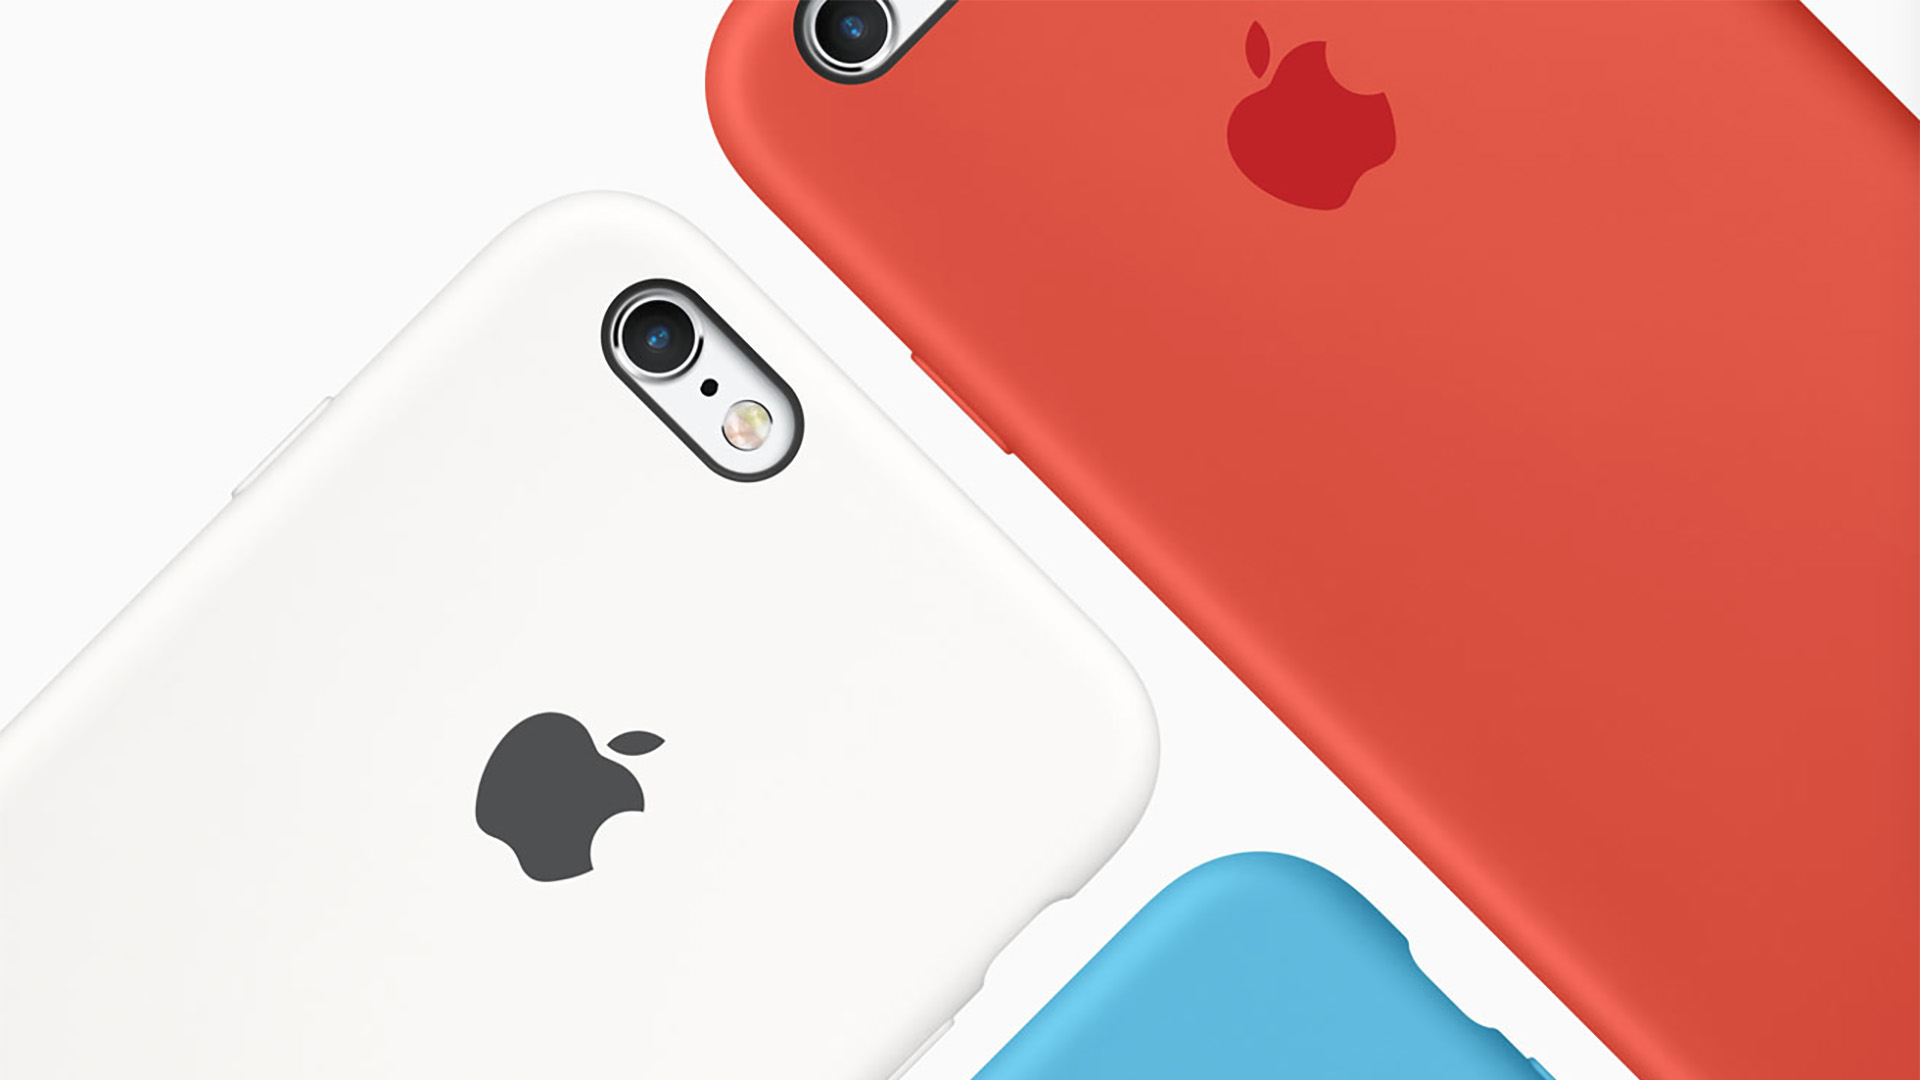 iPhone Photography/Videography Giftlist!